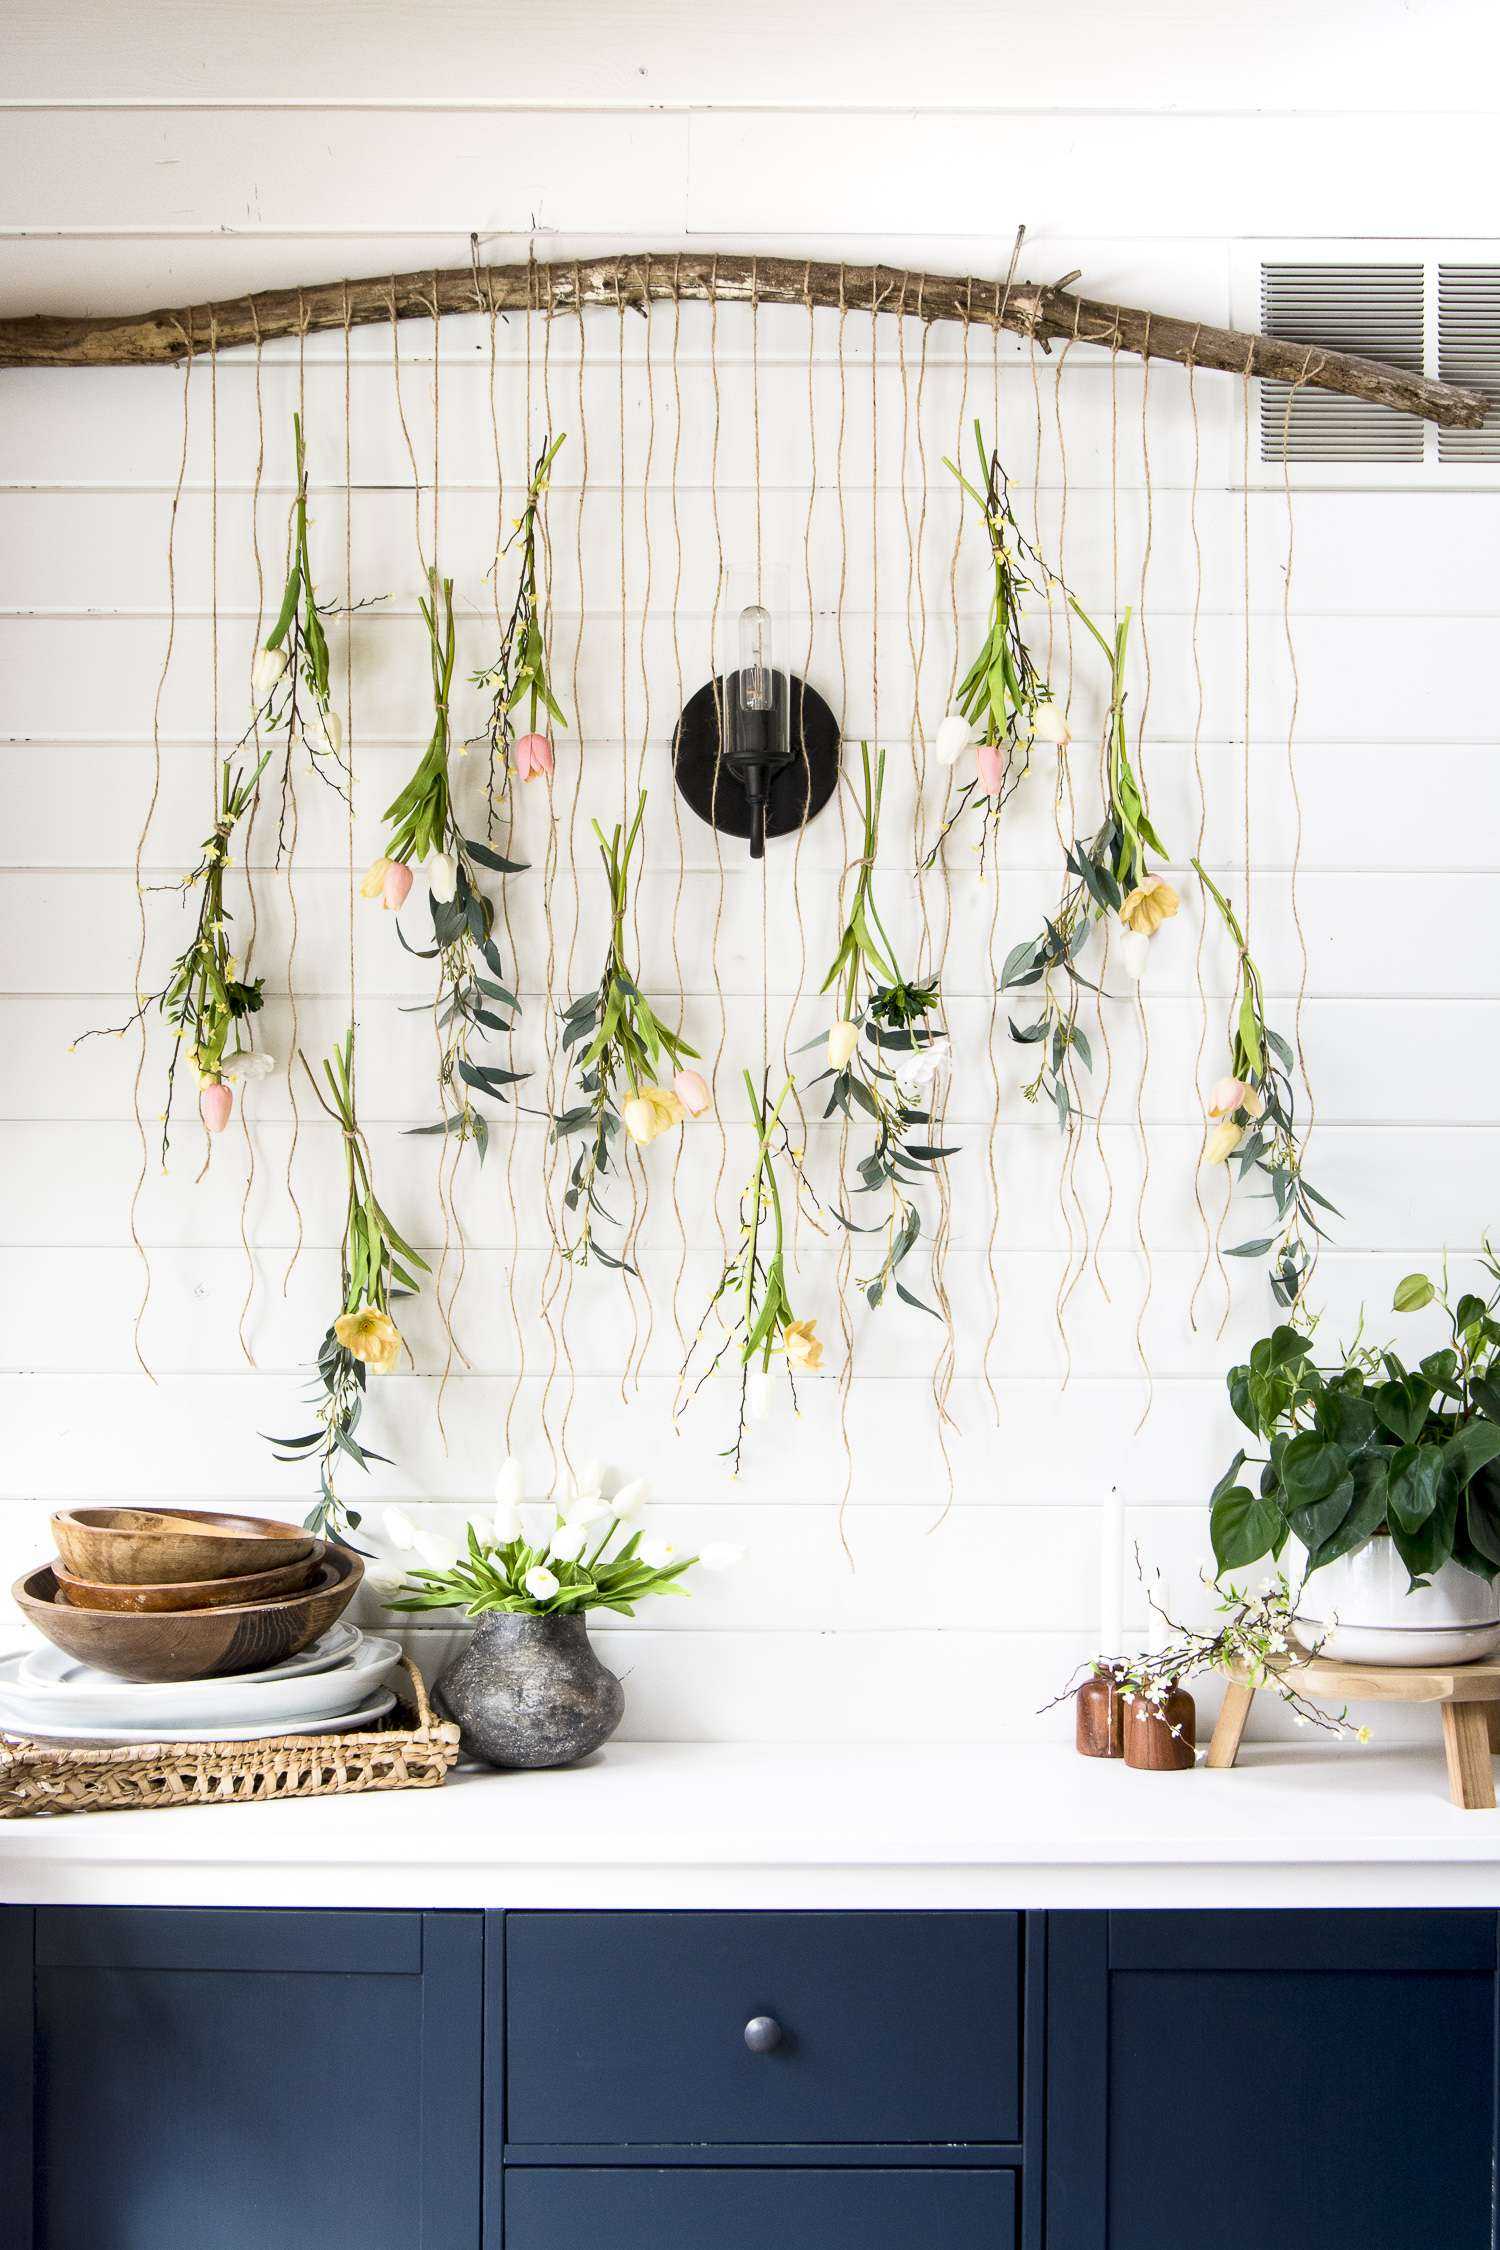 Flower wall decor display.